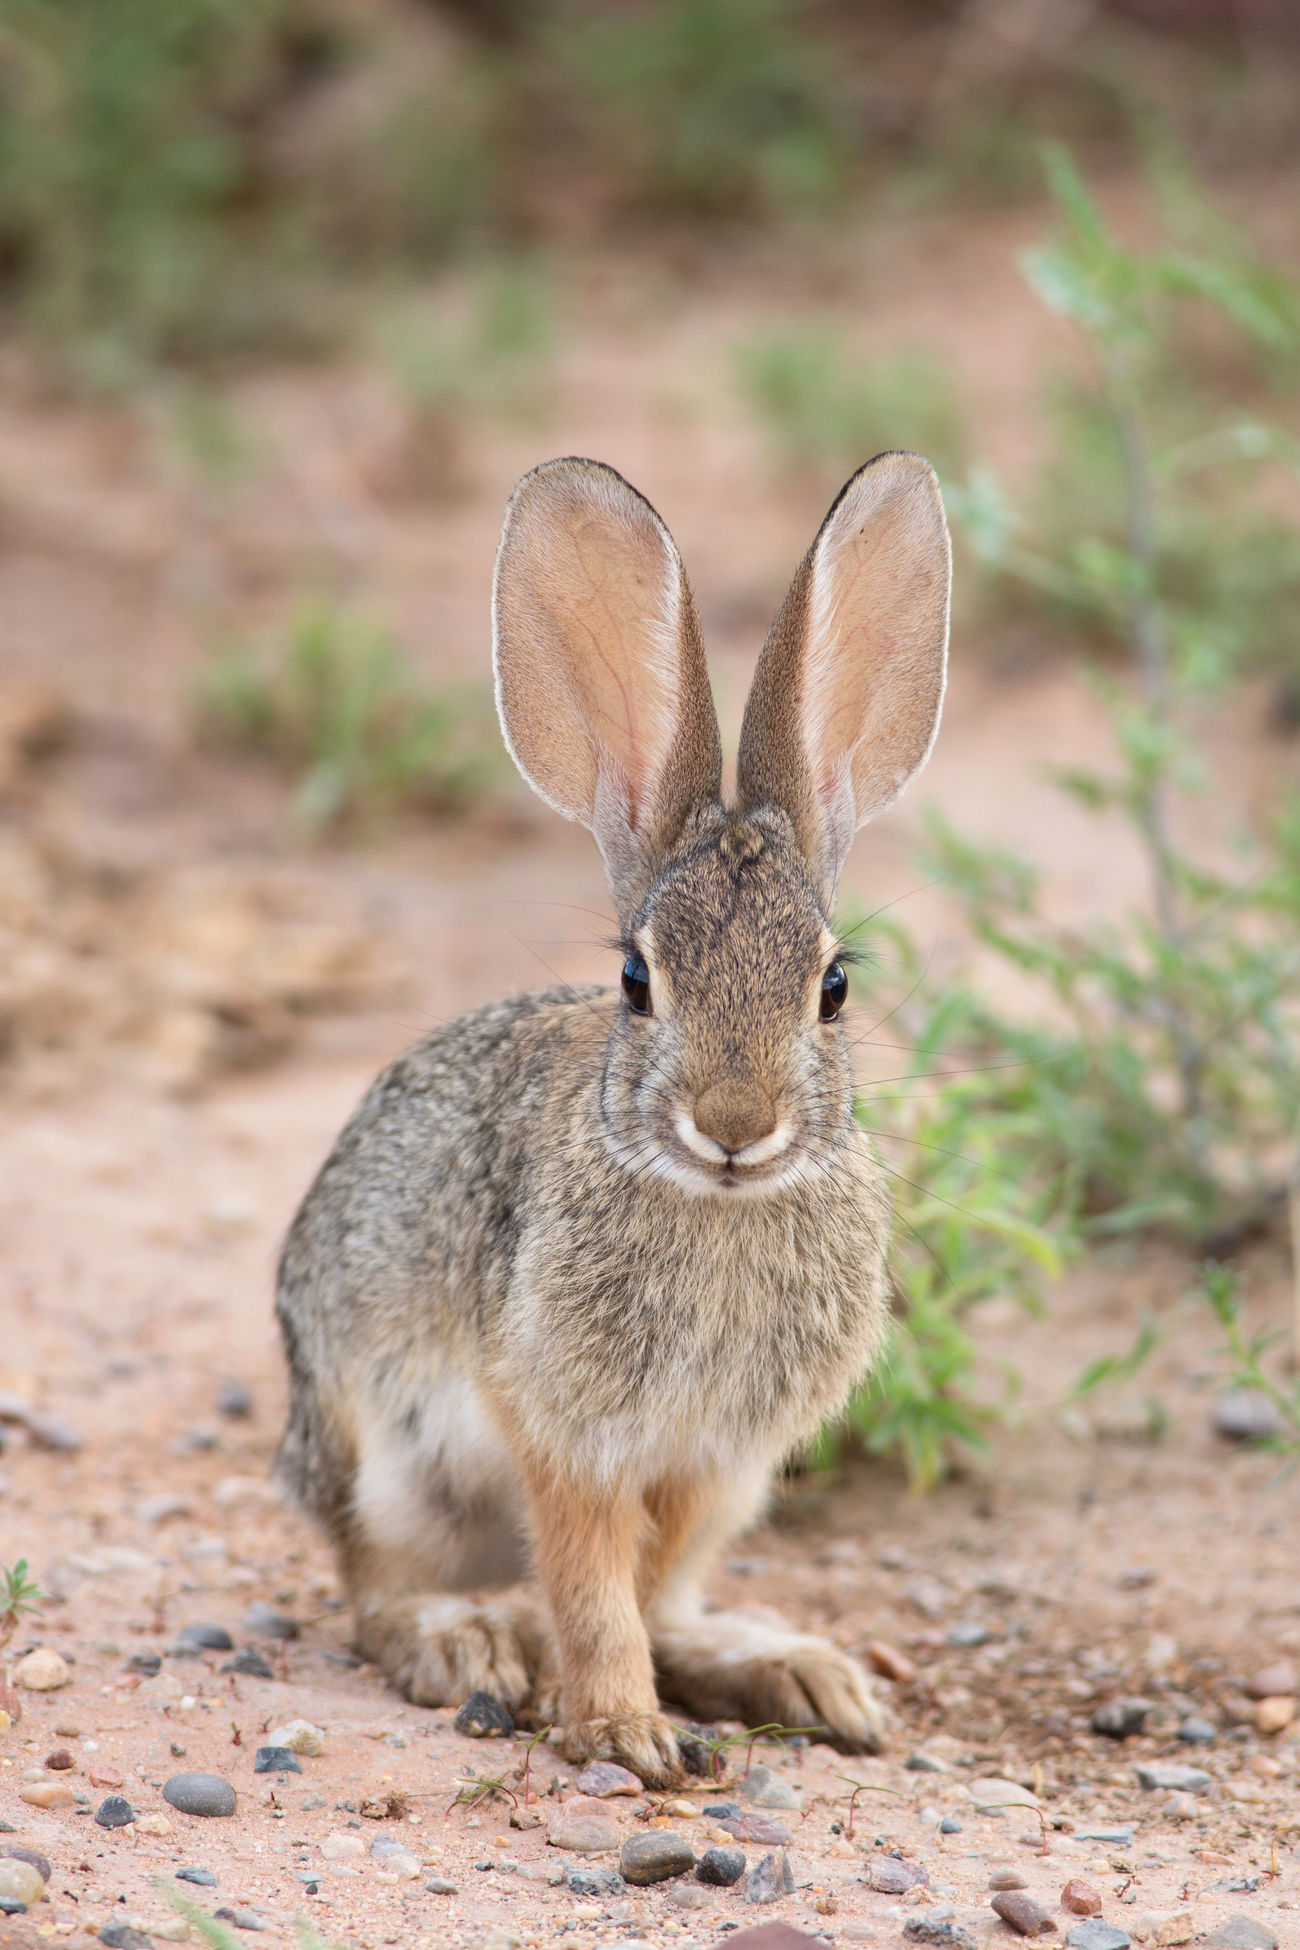 Cottontail Rabbit Ears Desert Life Cute Critters Animals Bunny Love Bunnies Animals In The Wild Rabbits Rabbit In My Yard Rabbit Faces Bunny Ears  Bunny Rabbit Nature Canon 5d Mark Lll I Hope My Pictures Touch Your Hart Eye4photography  EyeEm Nature Lover Bestoftheday Wildlife Wildlife Photography Faces Of EyeEm Brown Brown Eyes Earth Tones